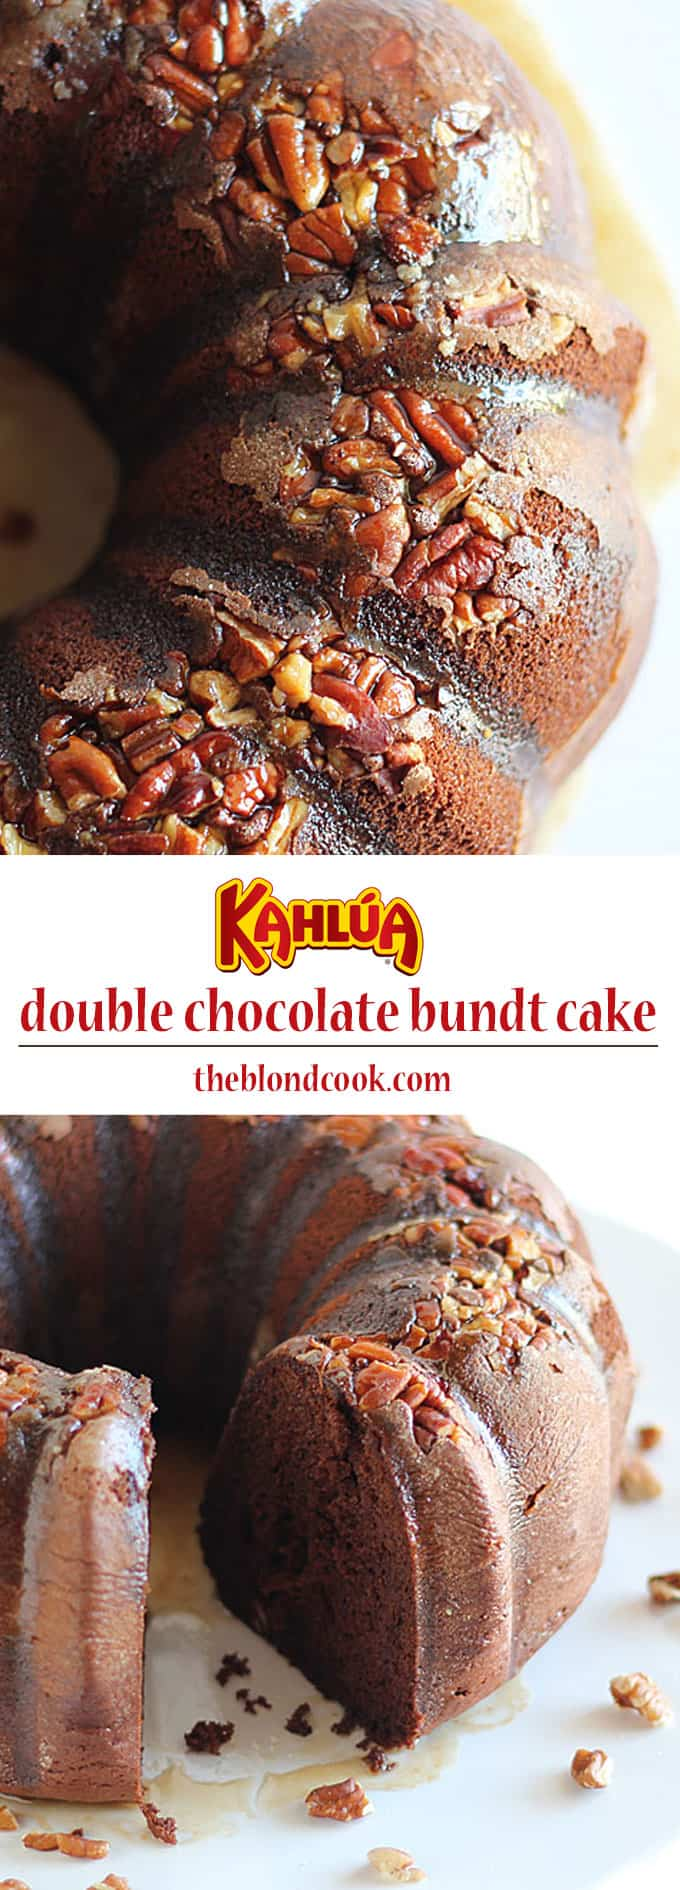 Kahlúa Double Chocolate Bundt Cake